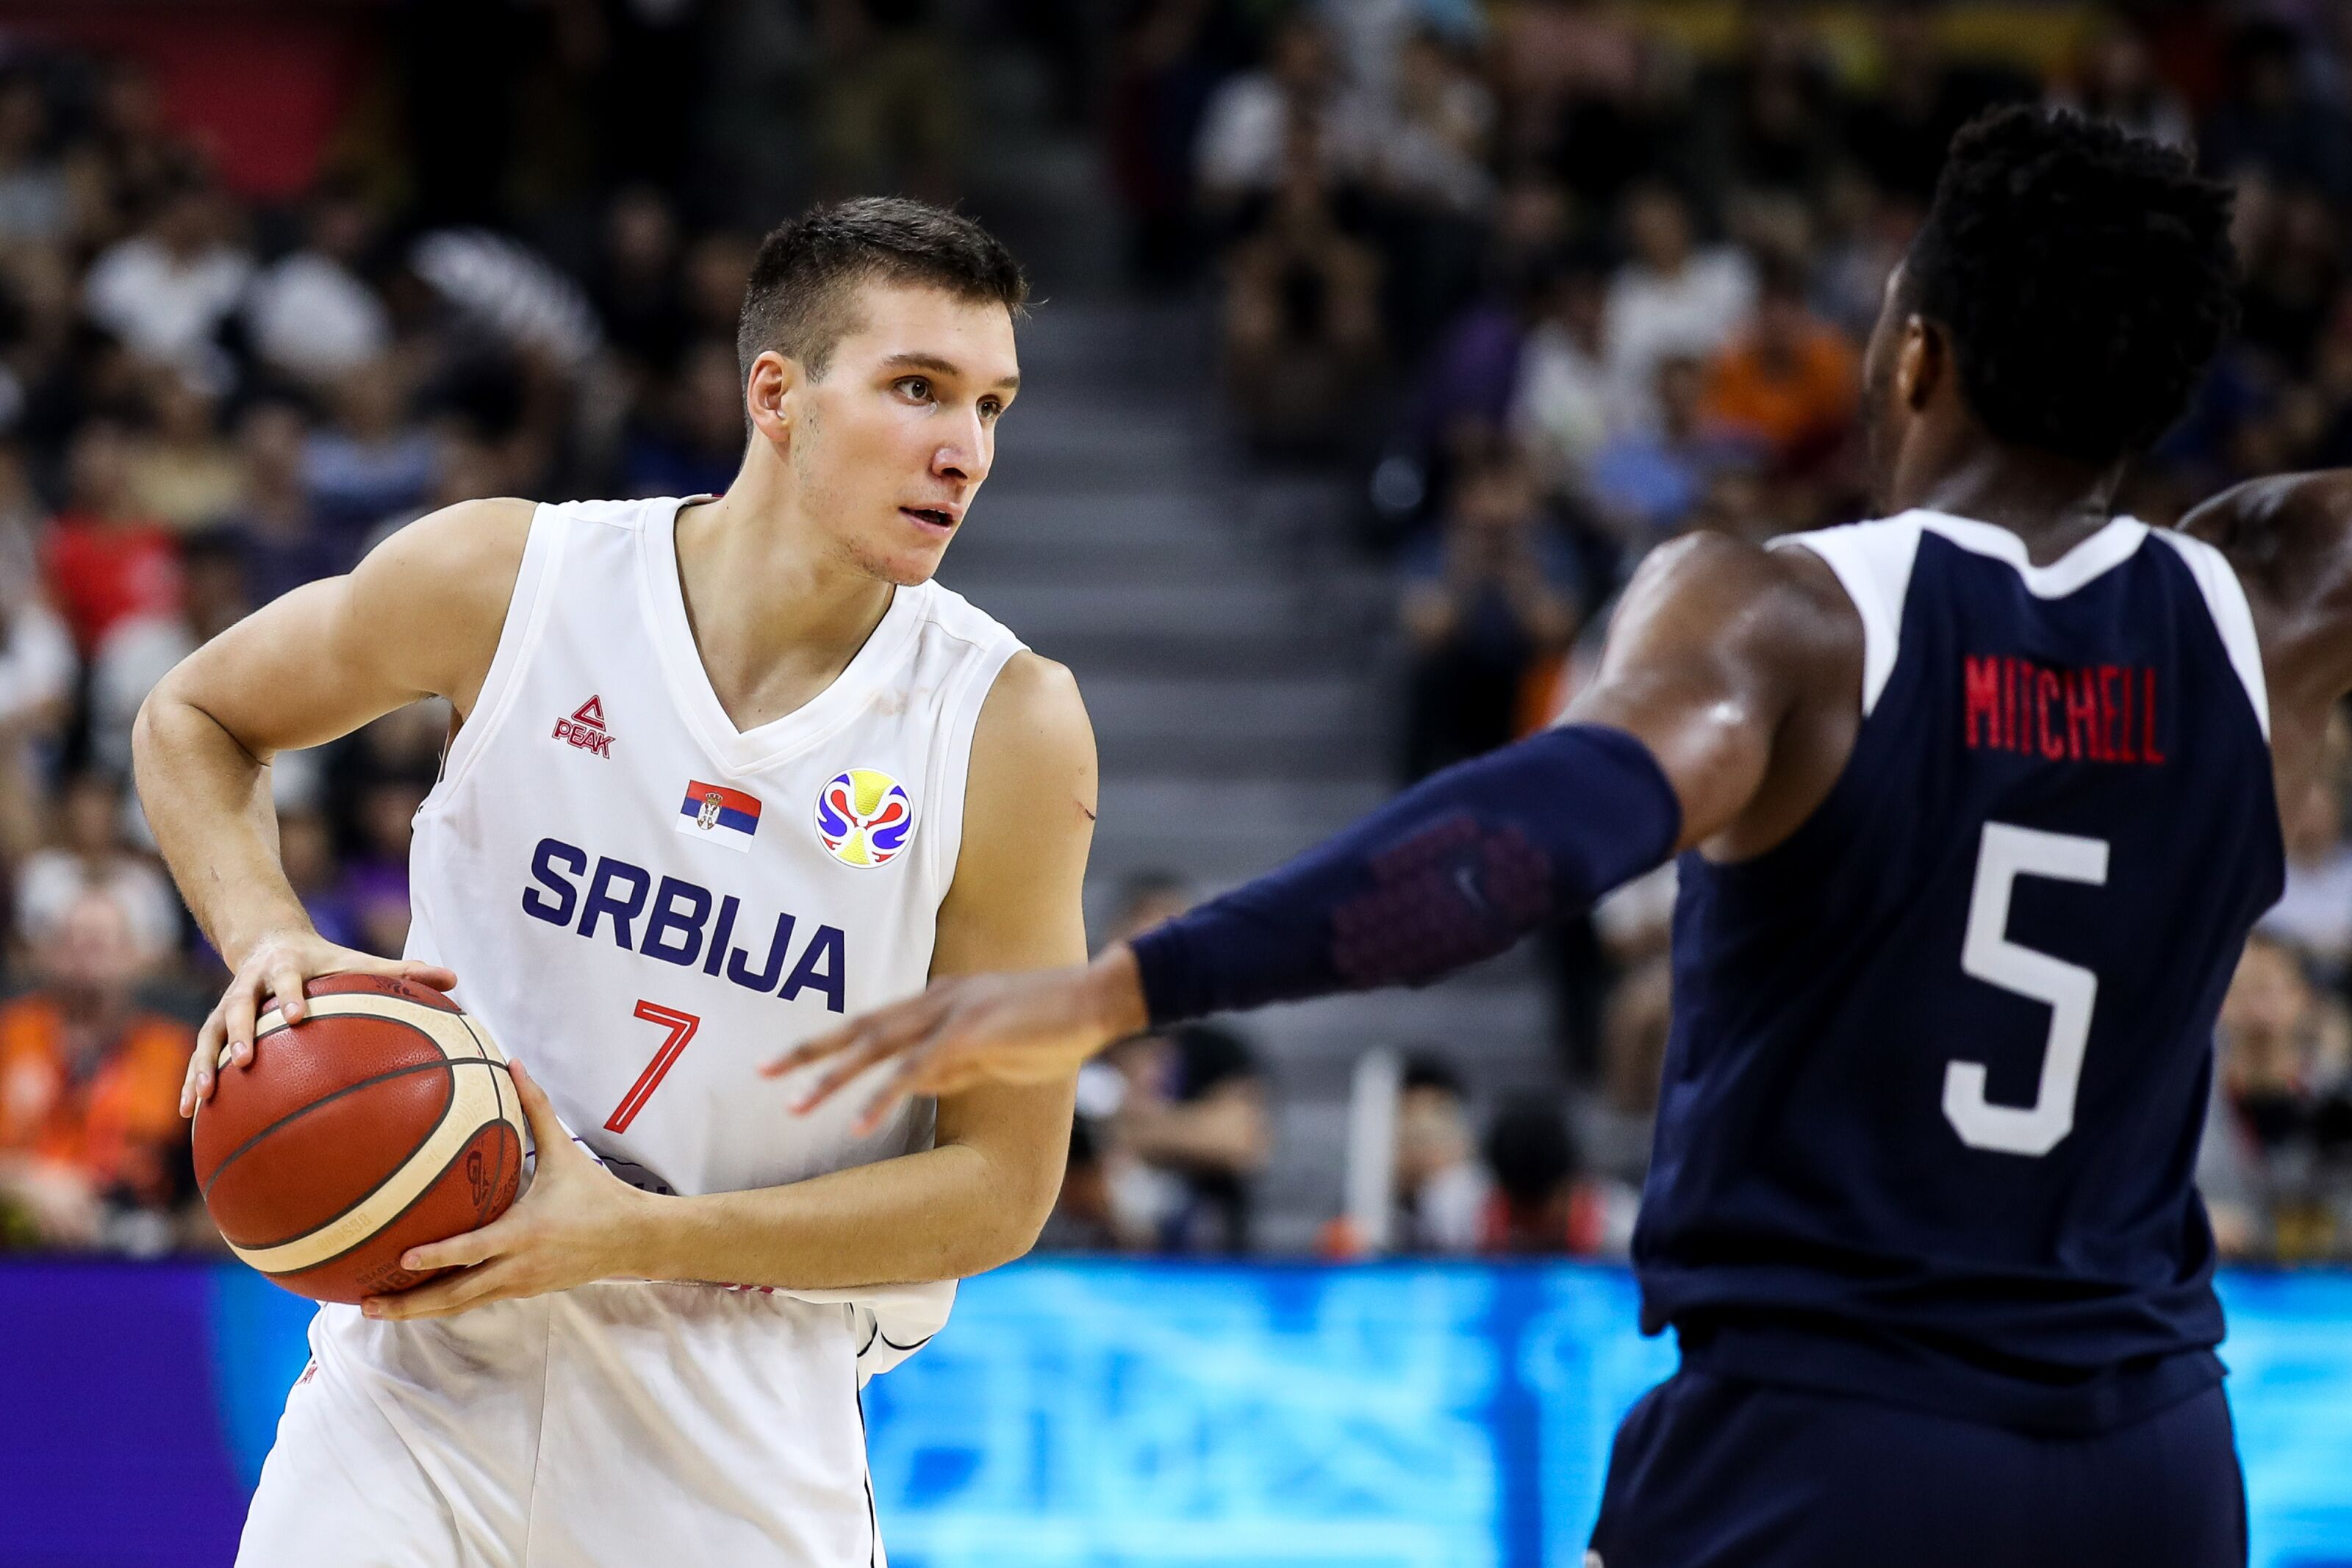 Sacramento Kings: Bogdan Bogdanovic Leads Serbia Past USA